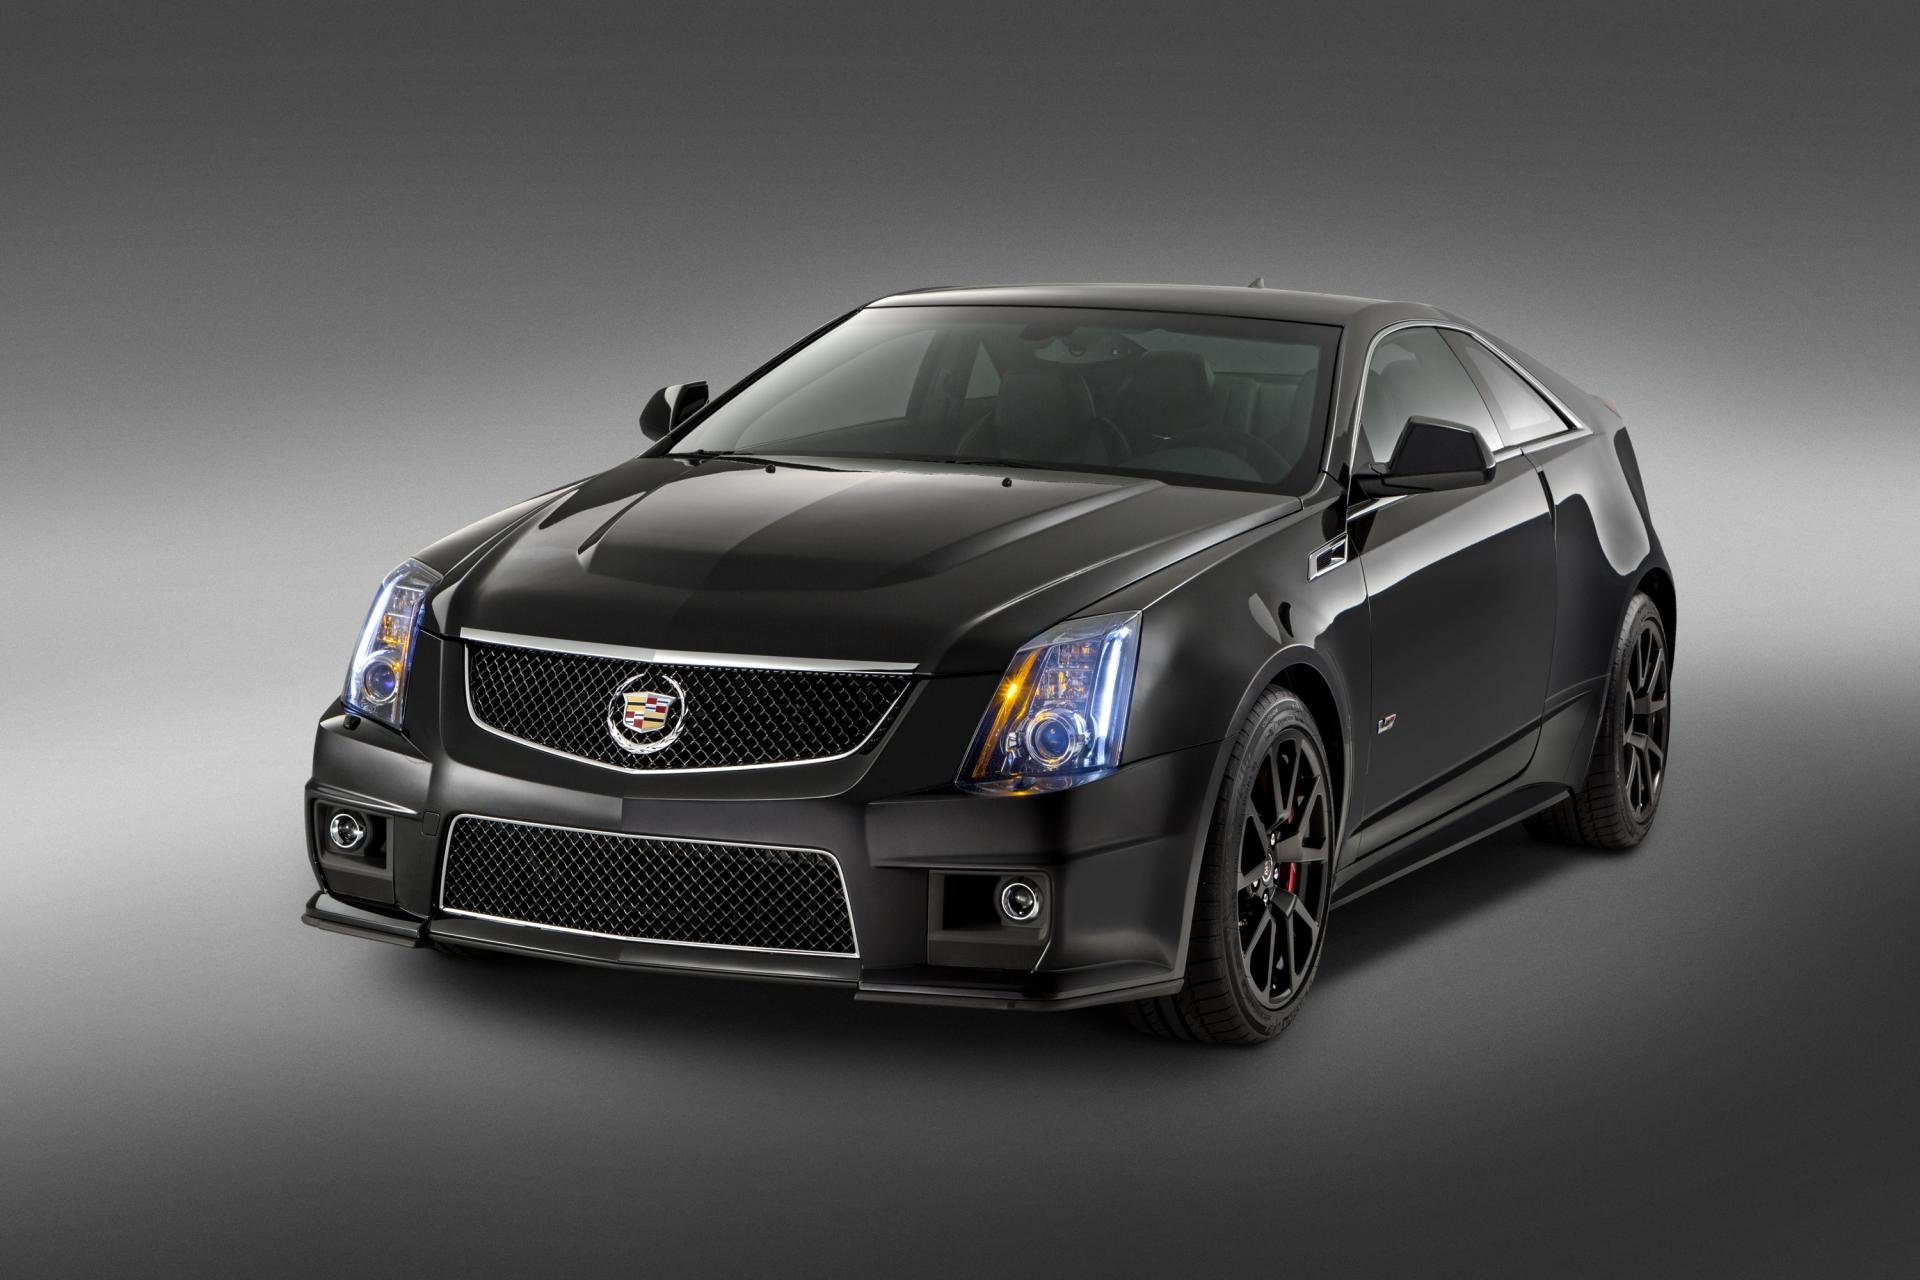 2015 cadillac cts v coupe news and information. Black Bedroom Furniture Sets. Home Design Ideas